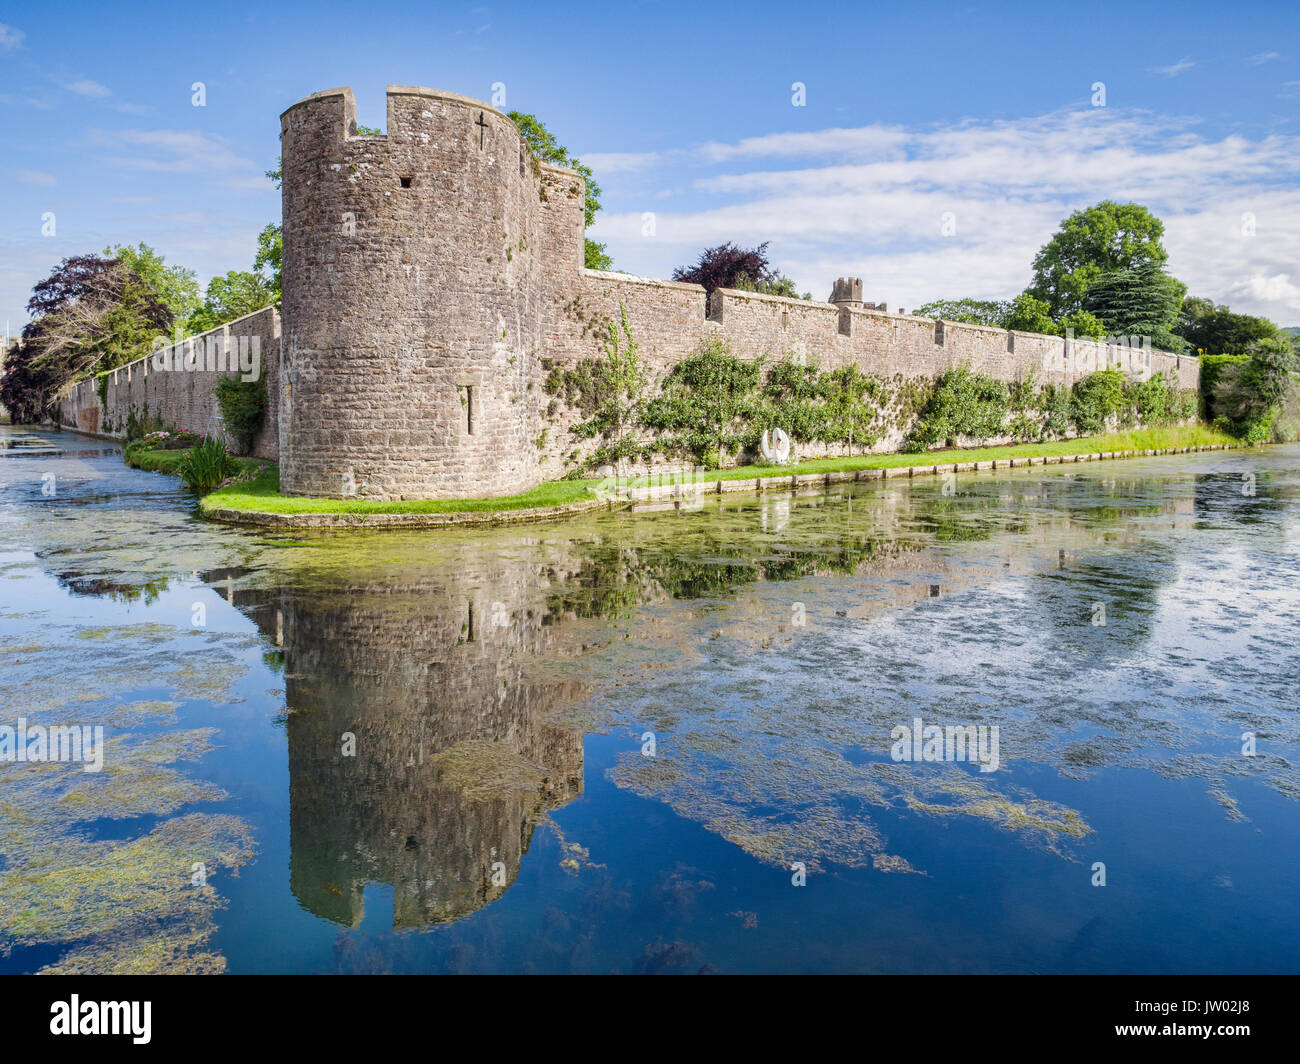 The moat and curtain wall surrounding the medieval Bishop's Palce at Wells, Somerset, England, UK. - Stock Image